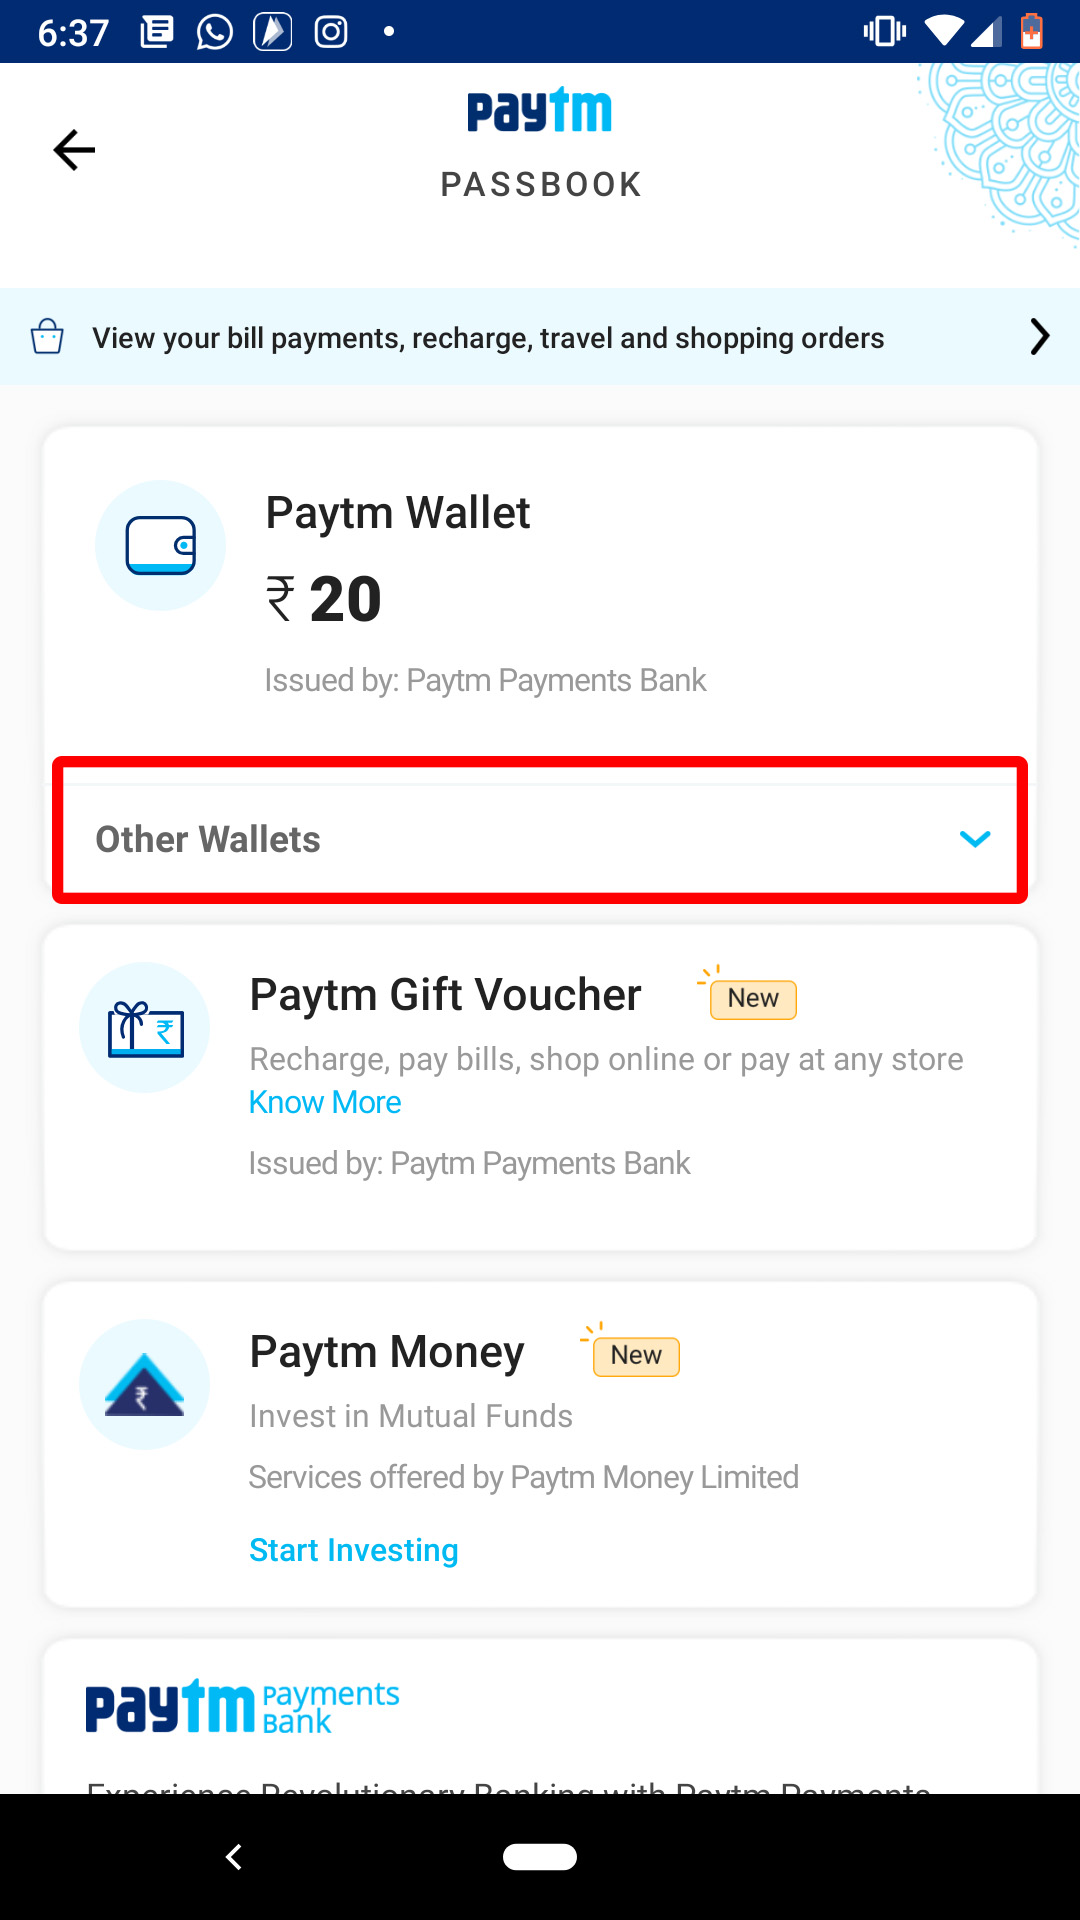 tap on other wallet